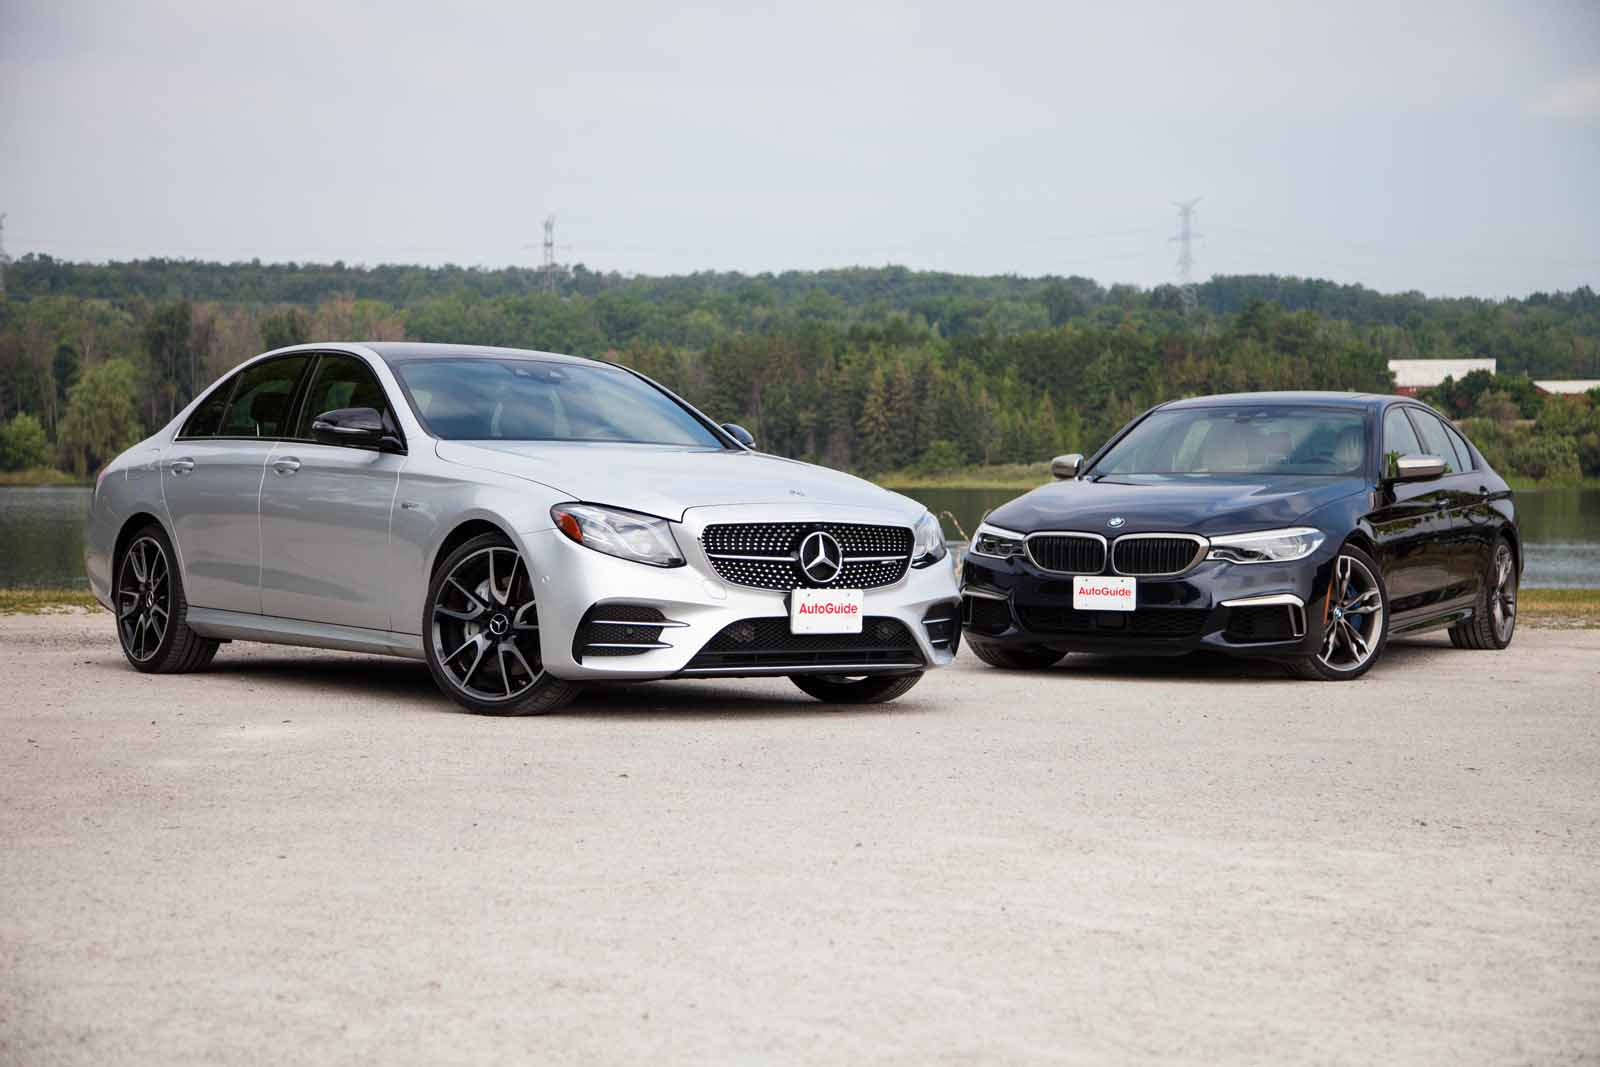 2017 mercedes benz e43 amg vs bmw m550i comparison for Bmw and mercedes benz